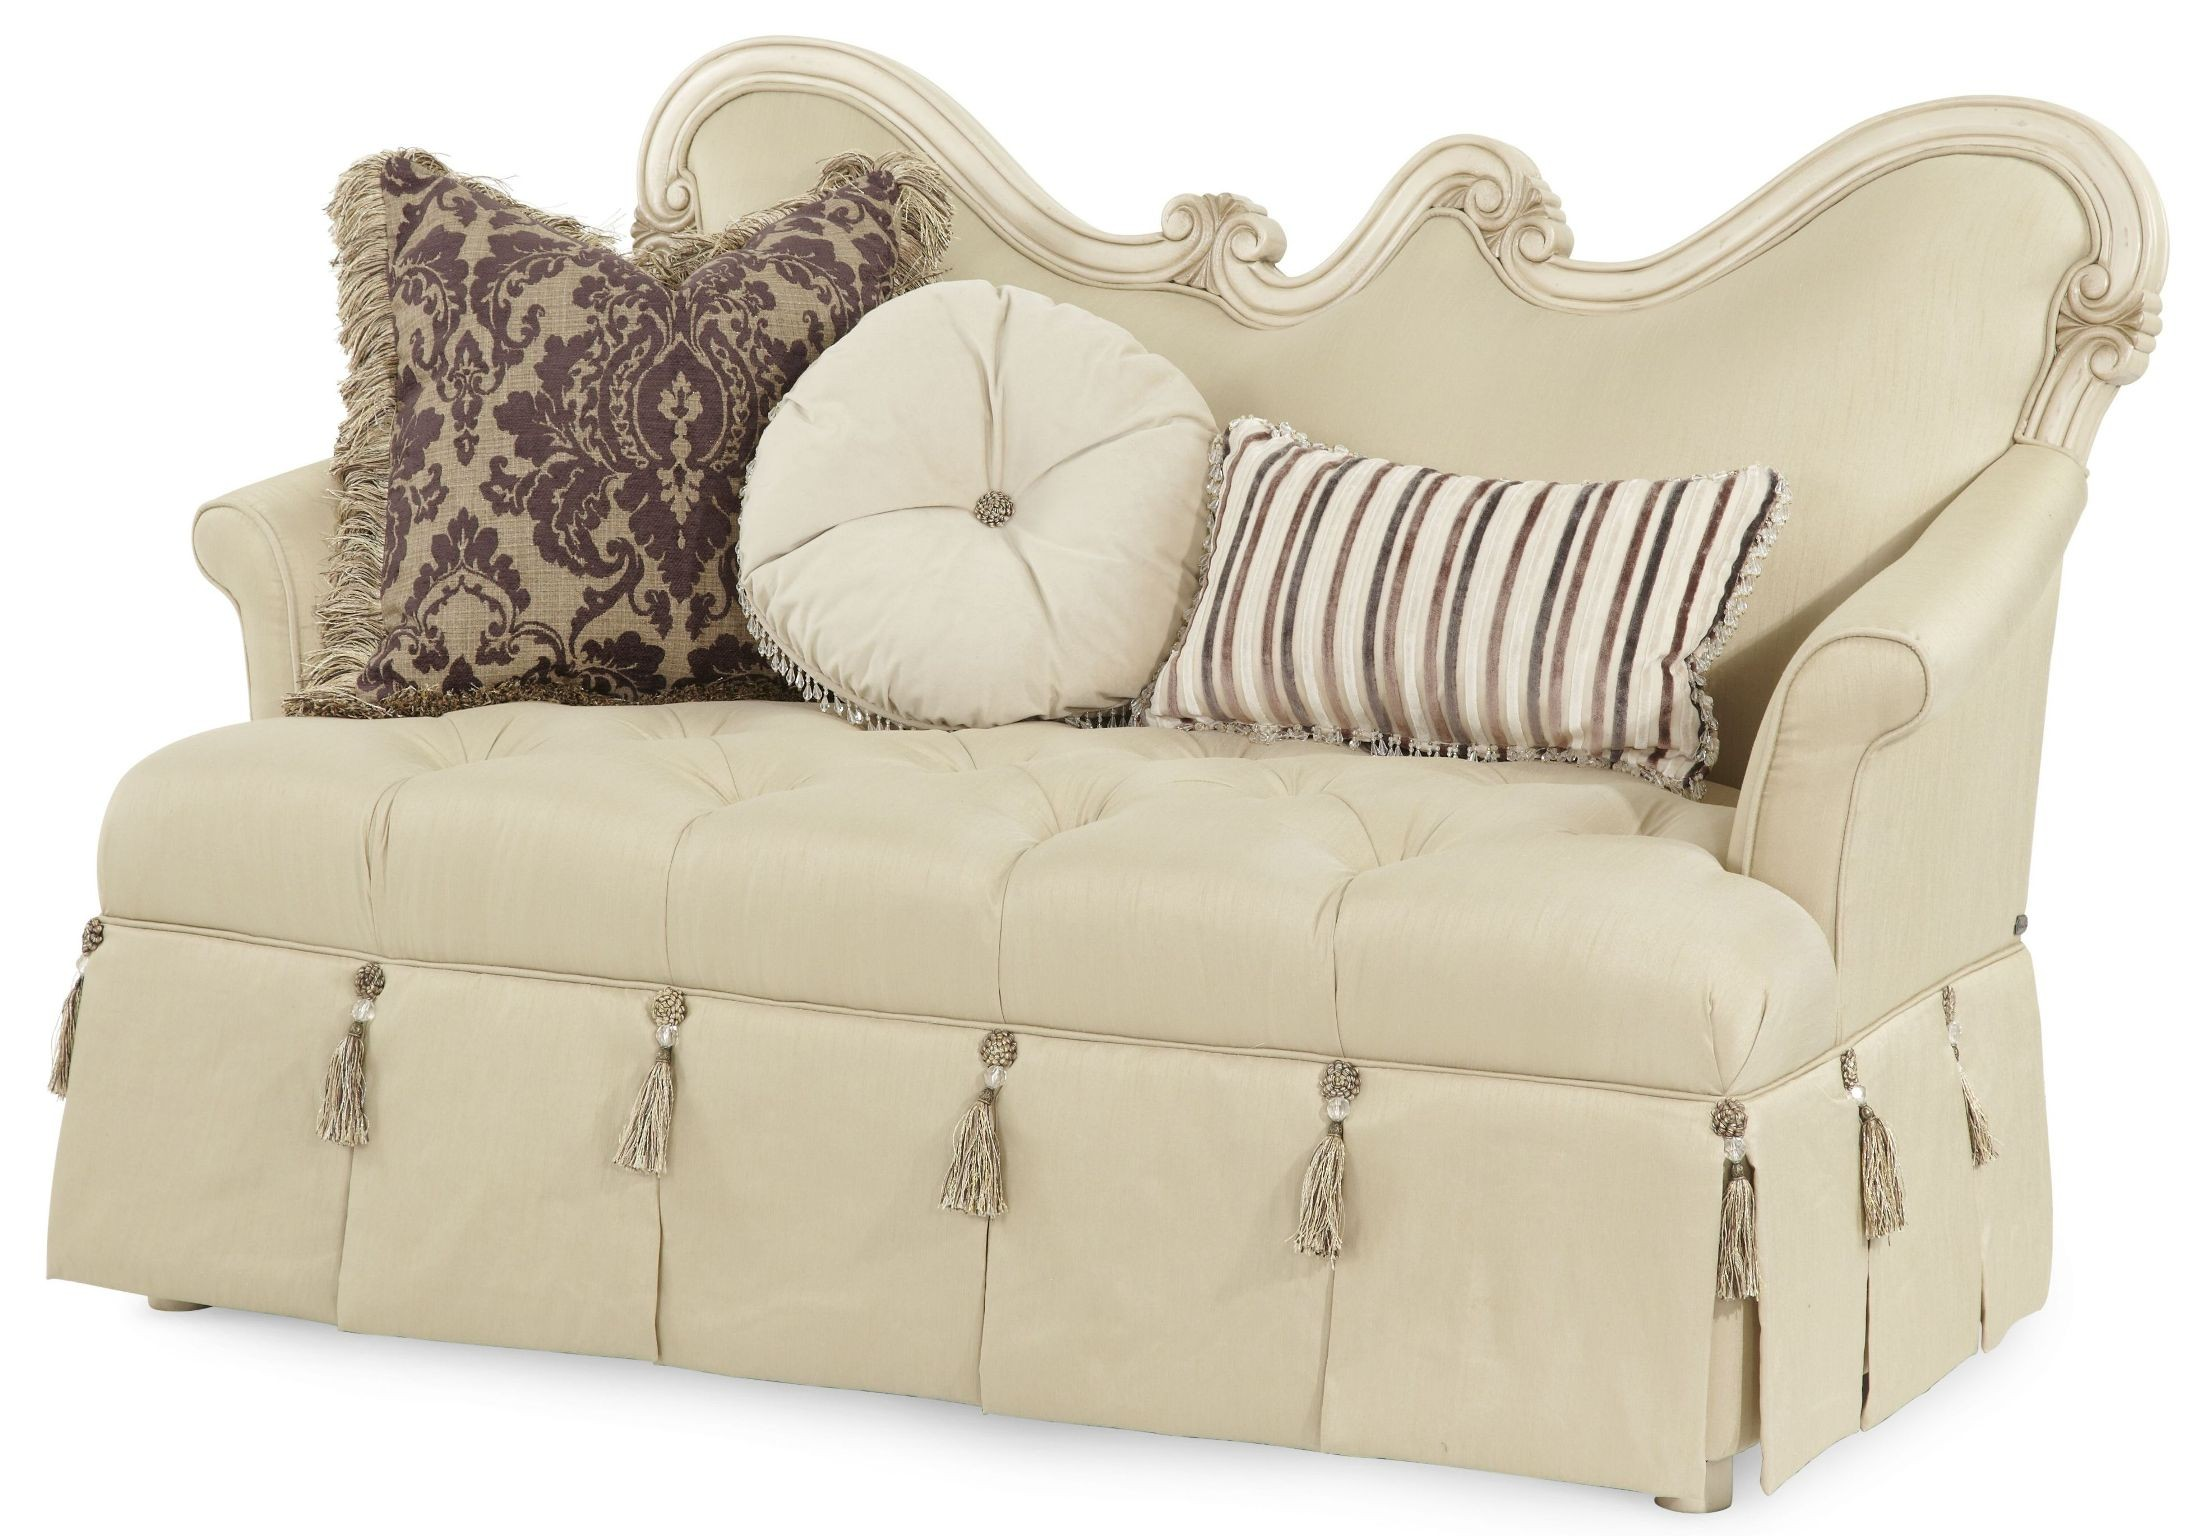 Lavelle Blanc Wood Trim Sattee from Aico (54864-04) | Coleman Furniture